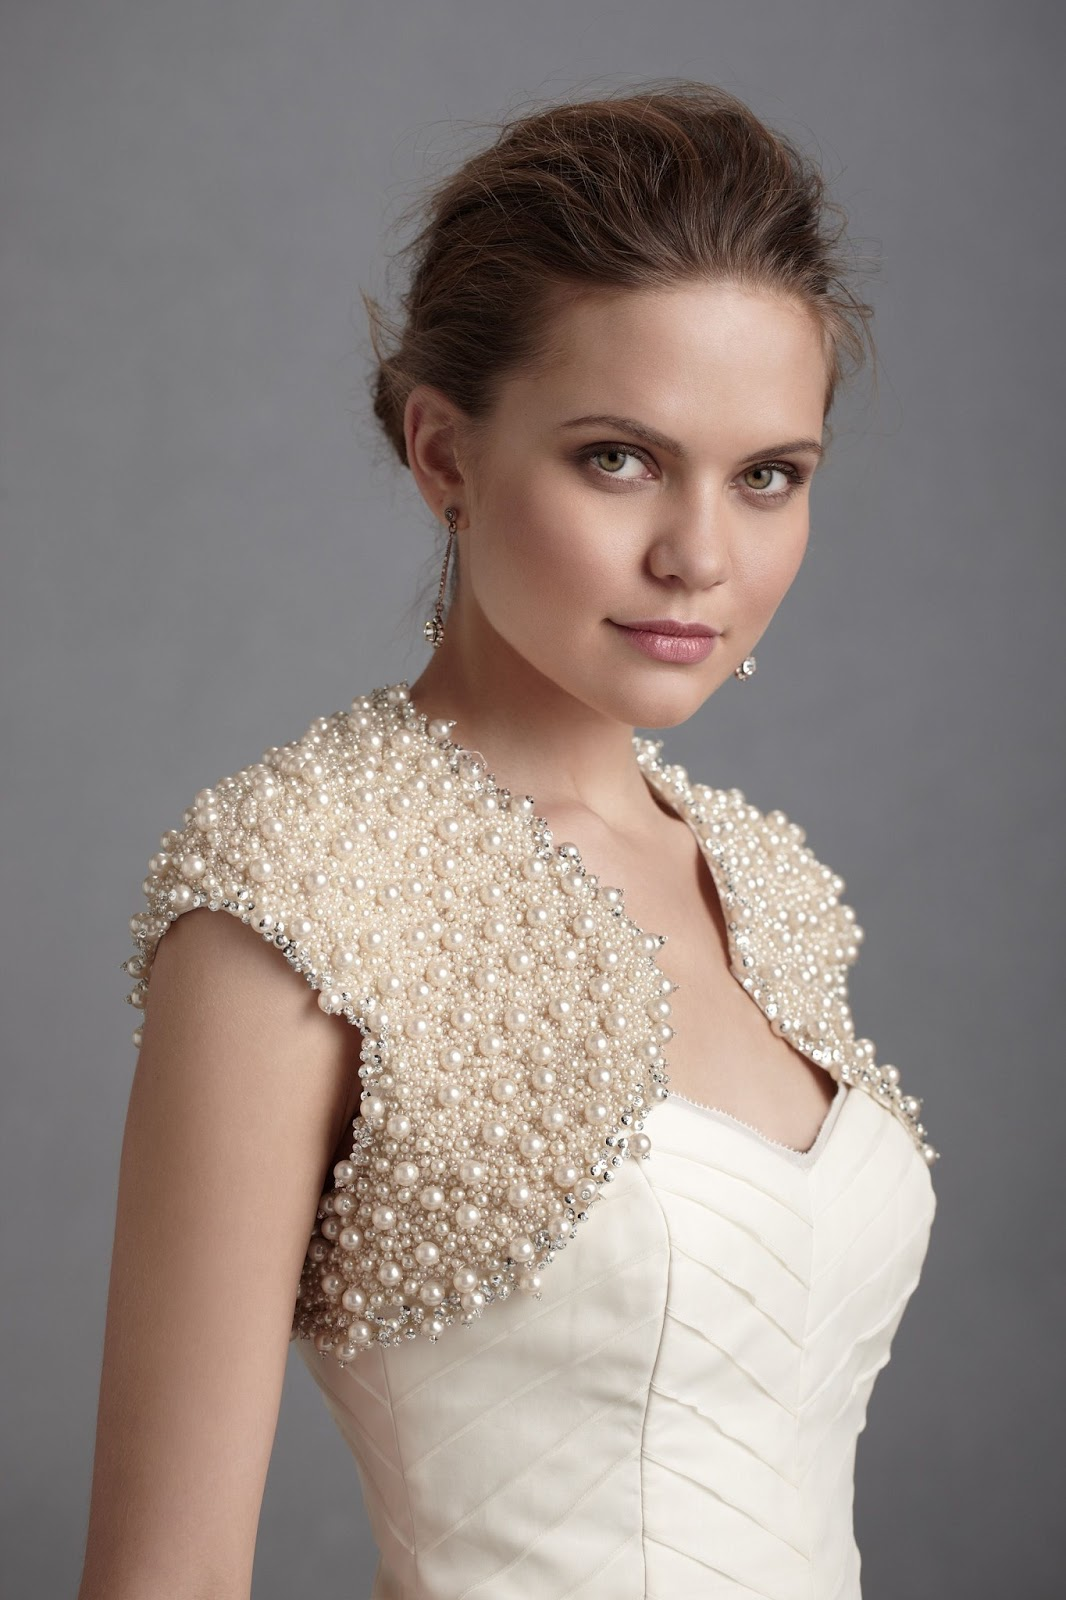 Bolero+Jacket+with+Pearls+for+Wedding+Dress